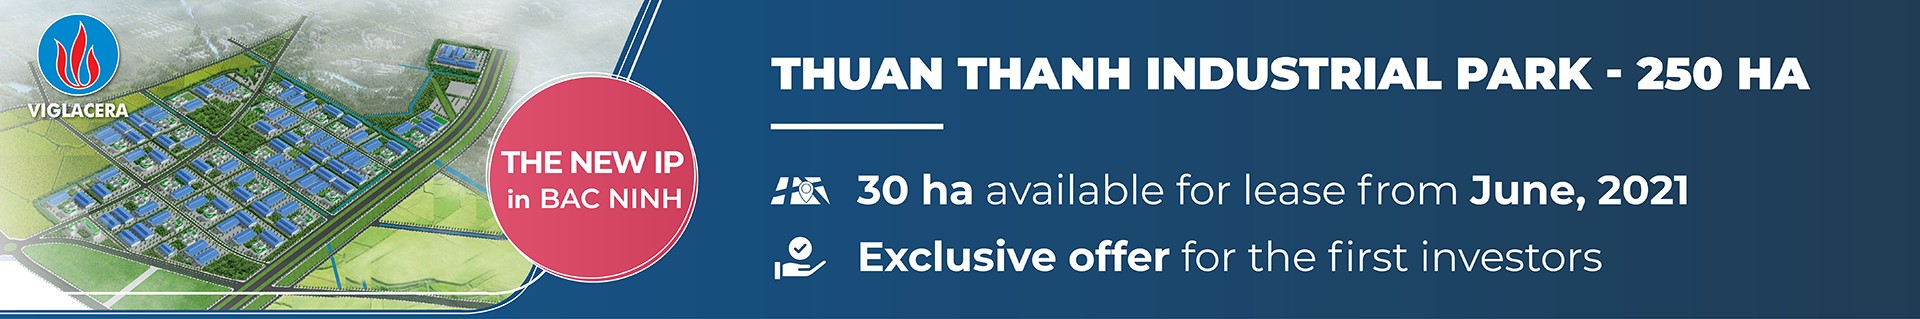 Thuan Thanh 1 Industrial Park